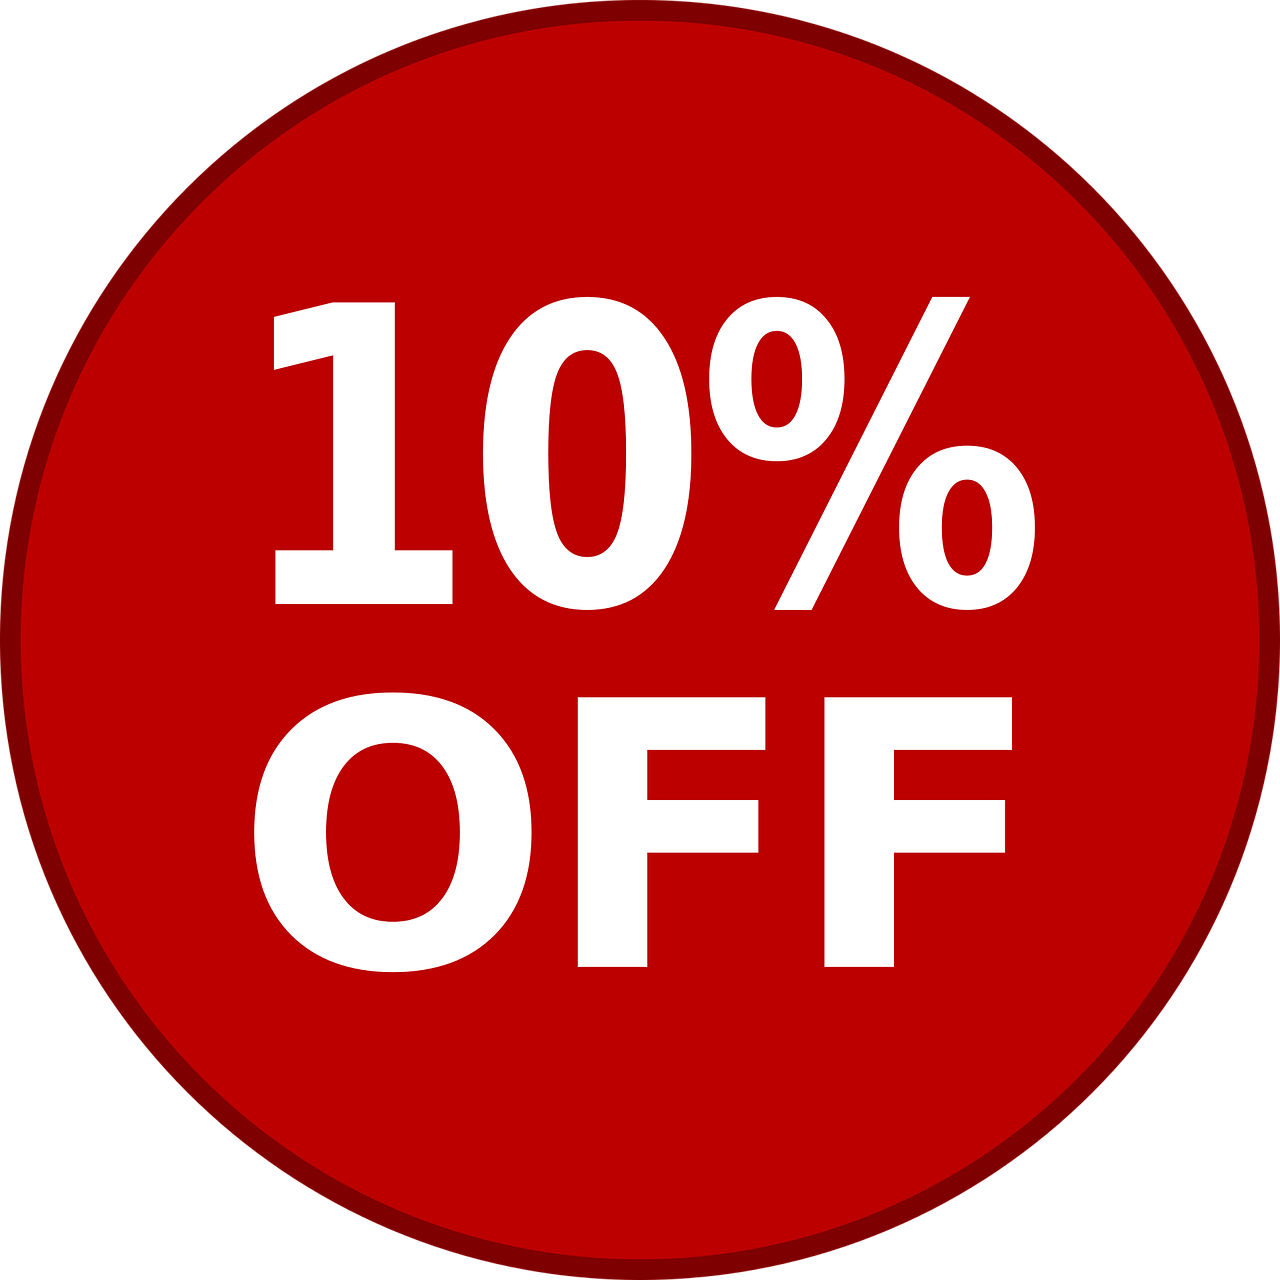 10% DISCOUNT ON YOUR SUMMER CAMP BOOKING